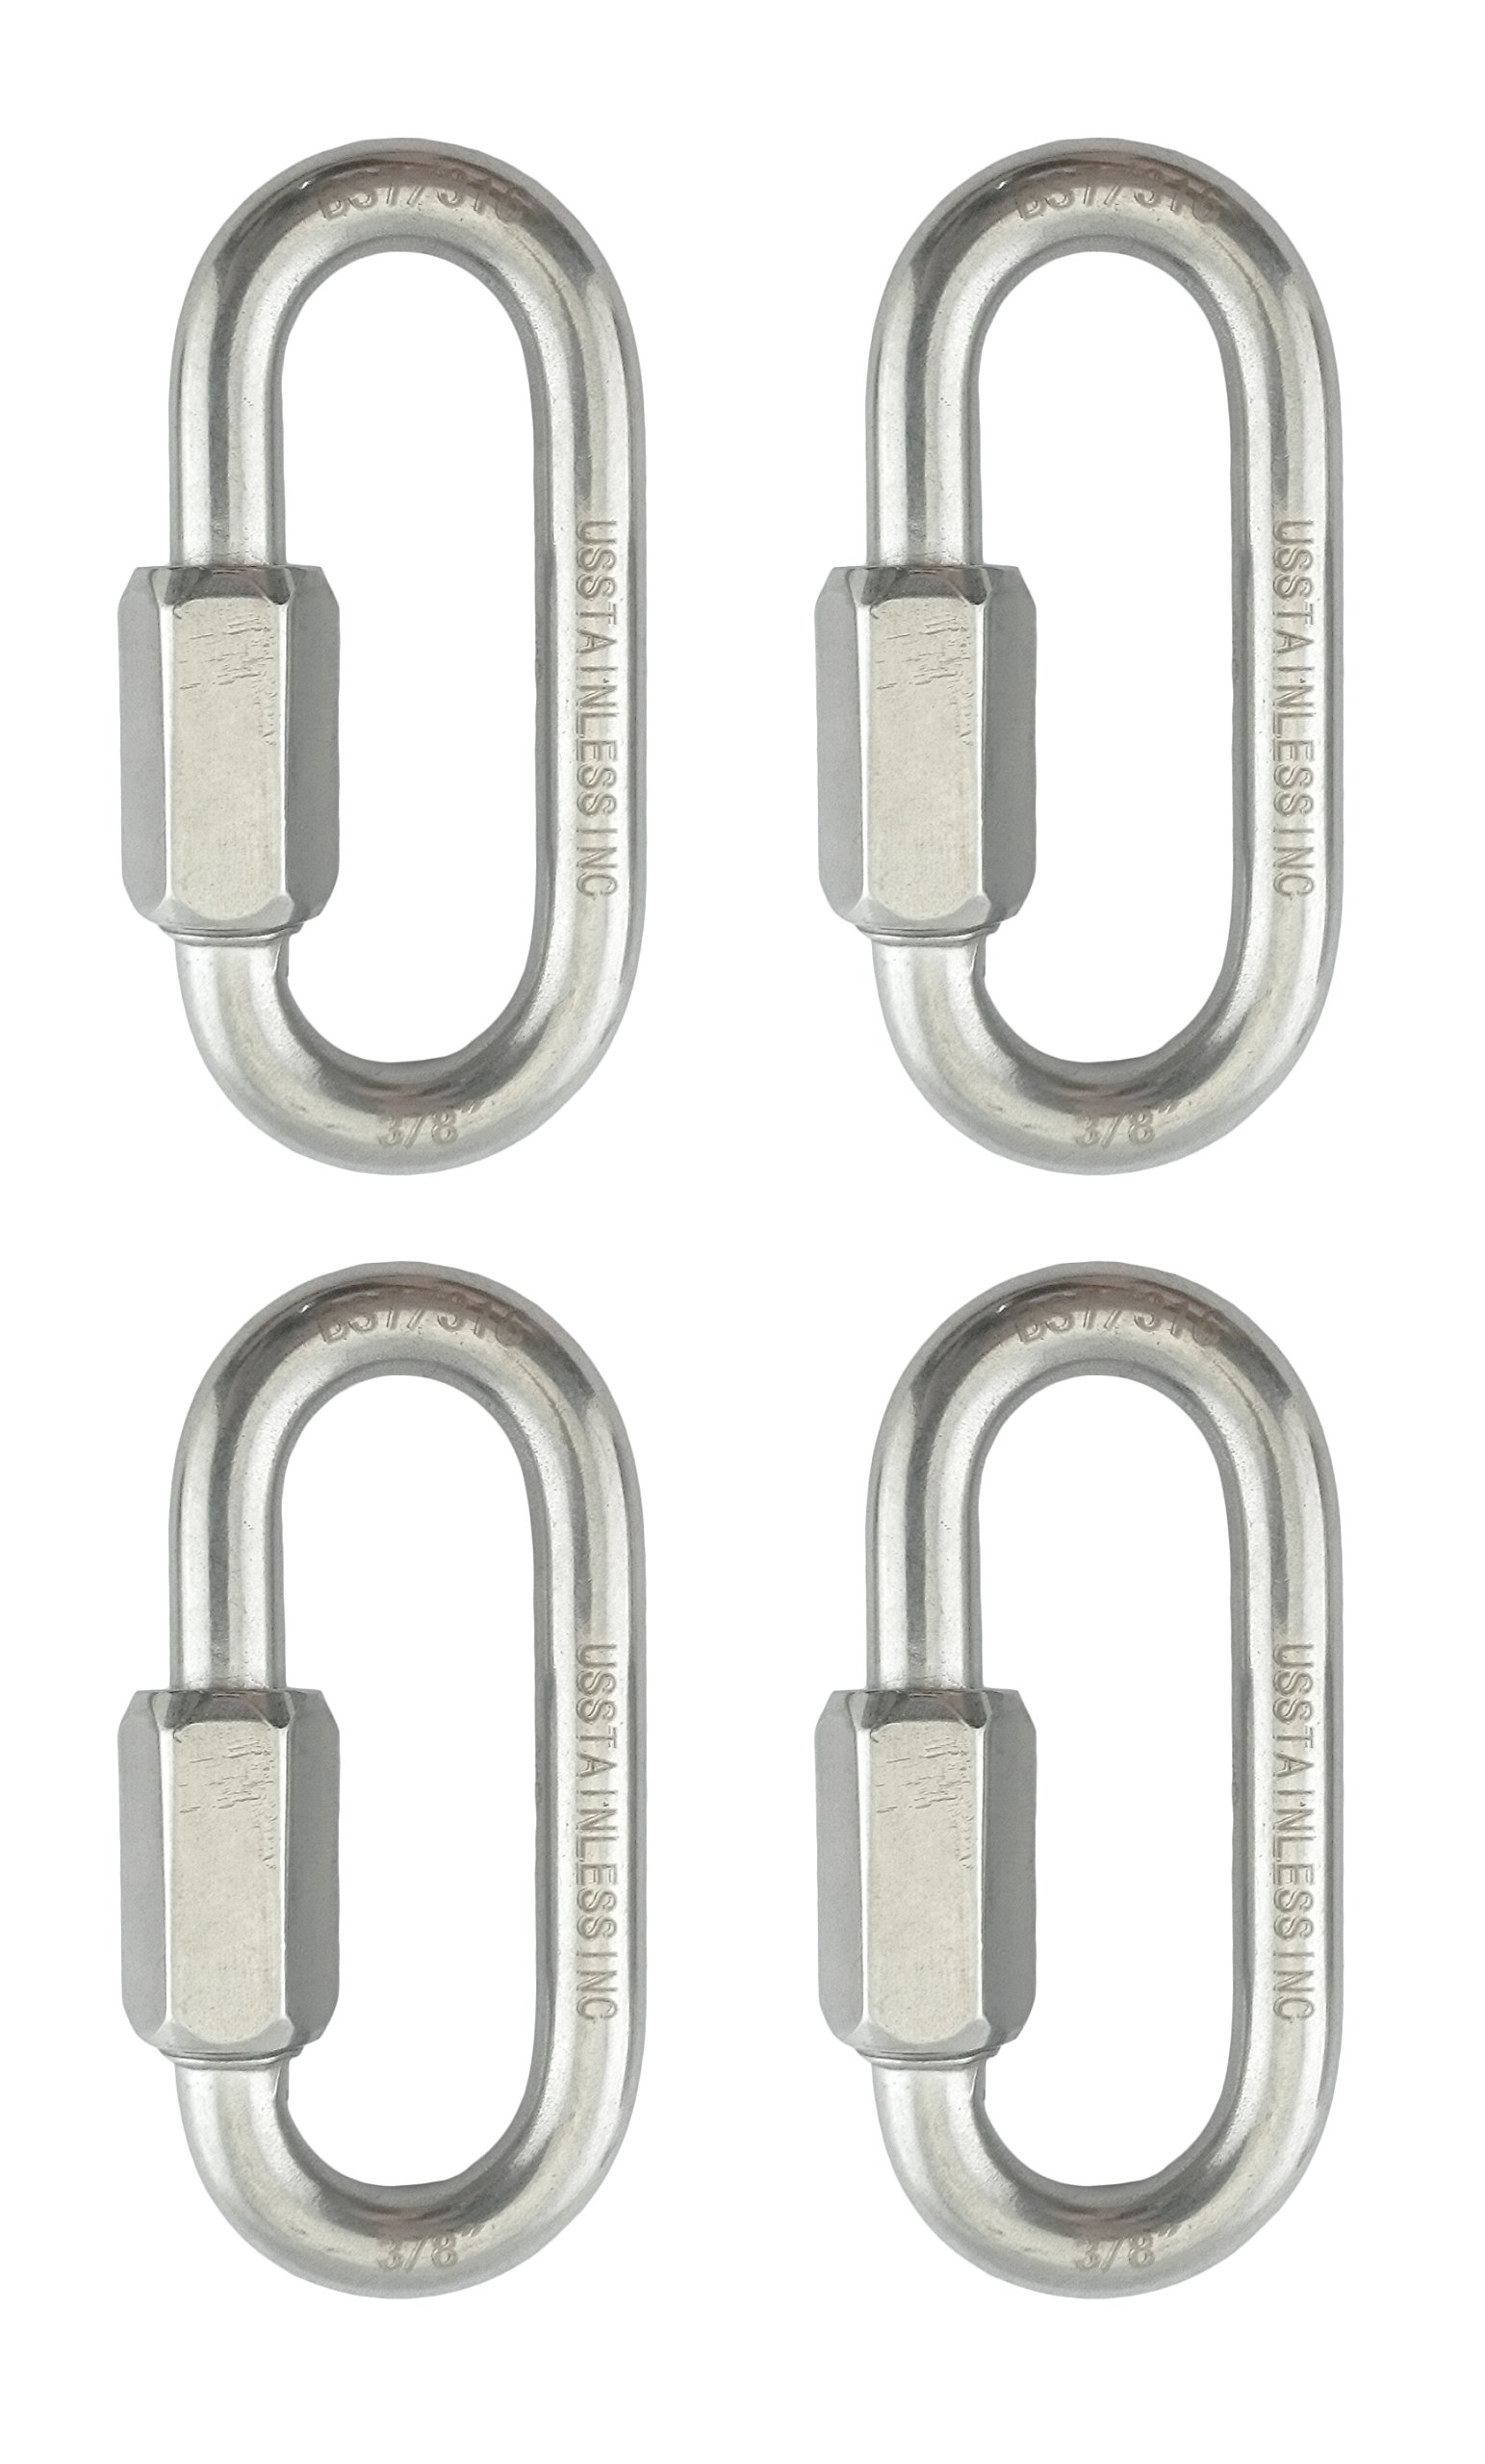 4 Pieces Stainless Steel 316 Quick Link 3/8'' (10mm) Marine Grade